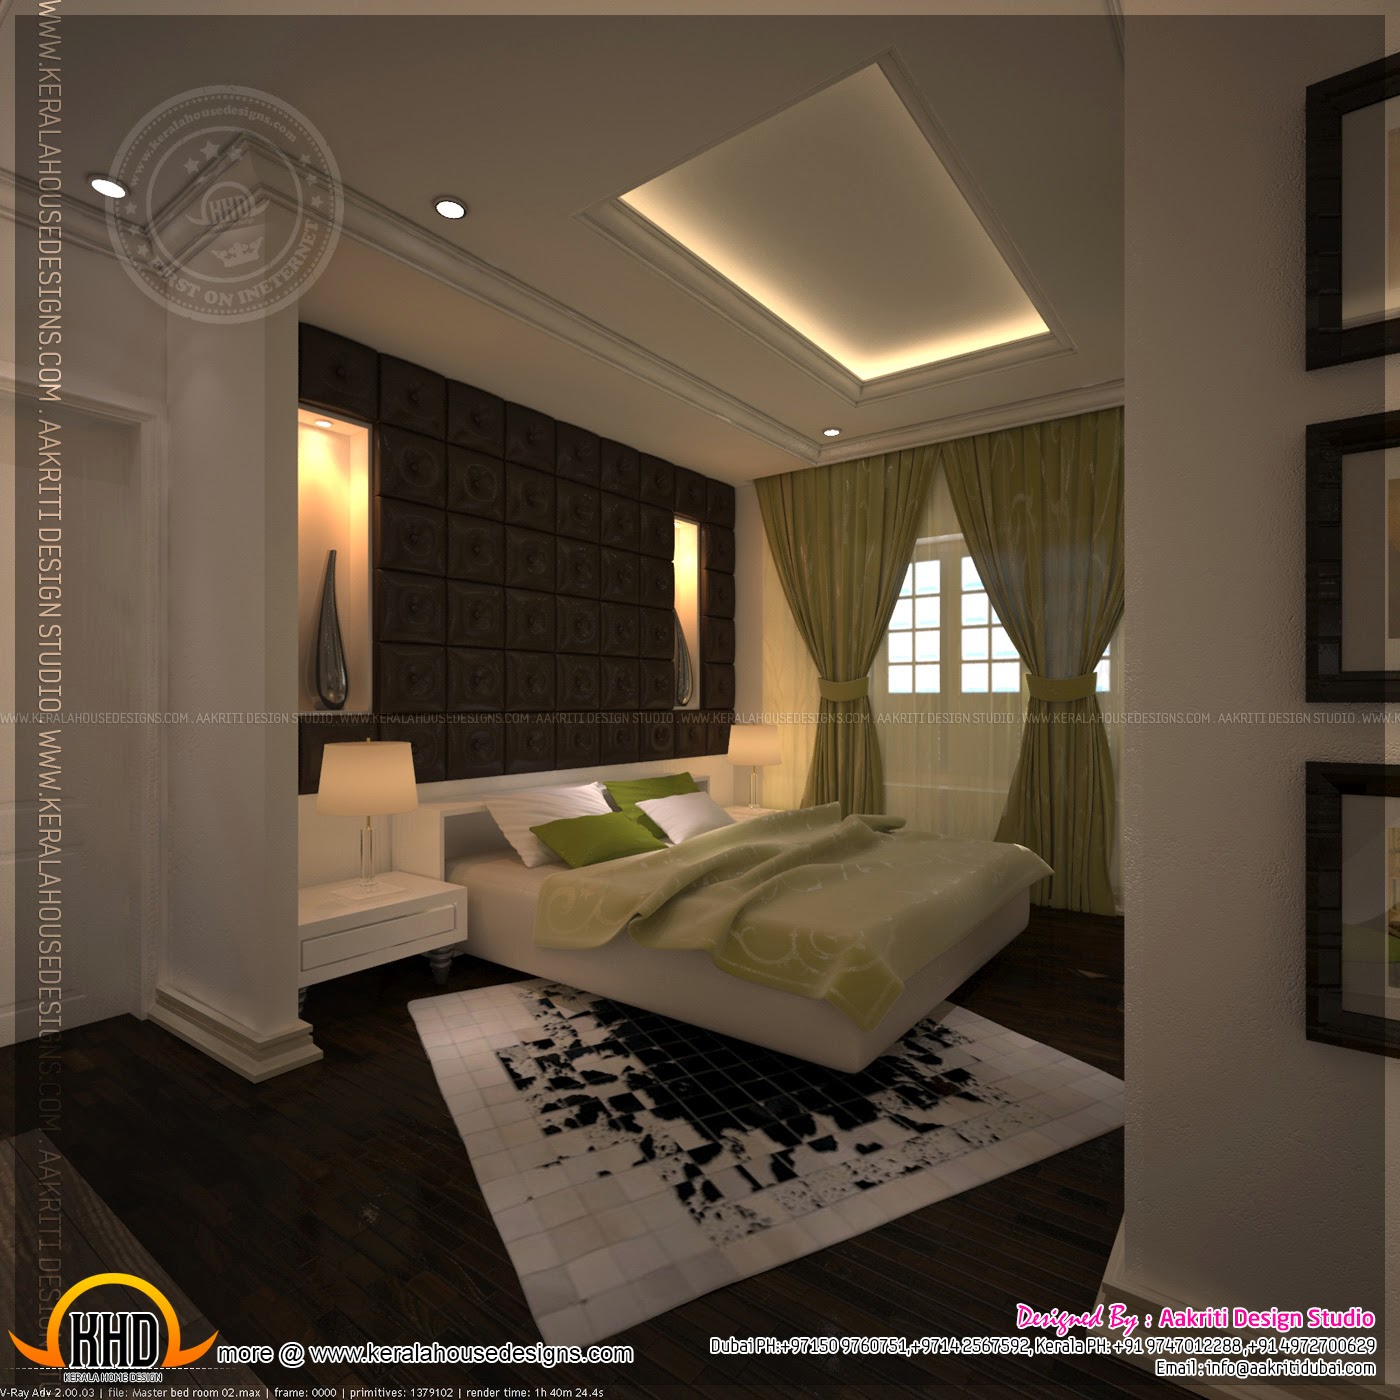 April 2015 home kerala plans for Drawing room bed design